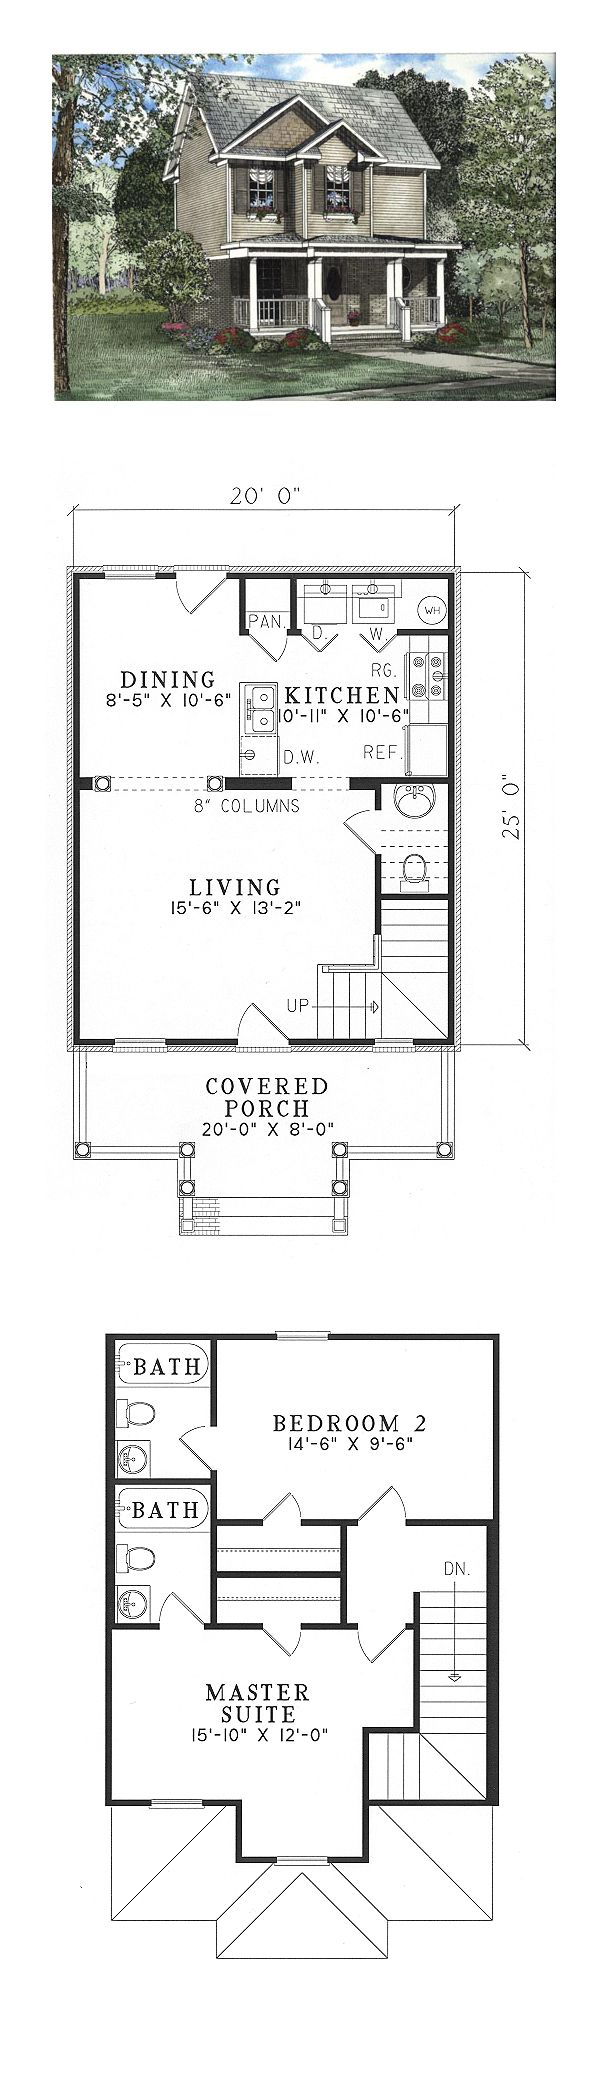 Best 25 narrow lot house plans ideas on pinterest narrow house plans retirement house plans - Narrow house plan paint ...